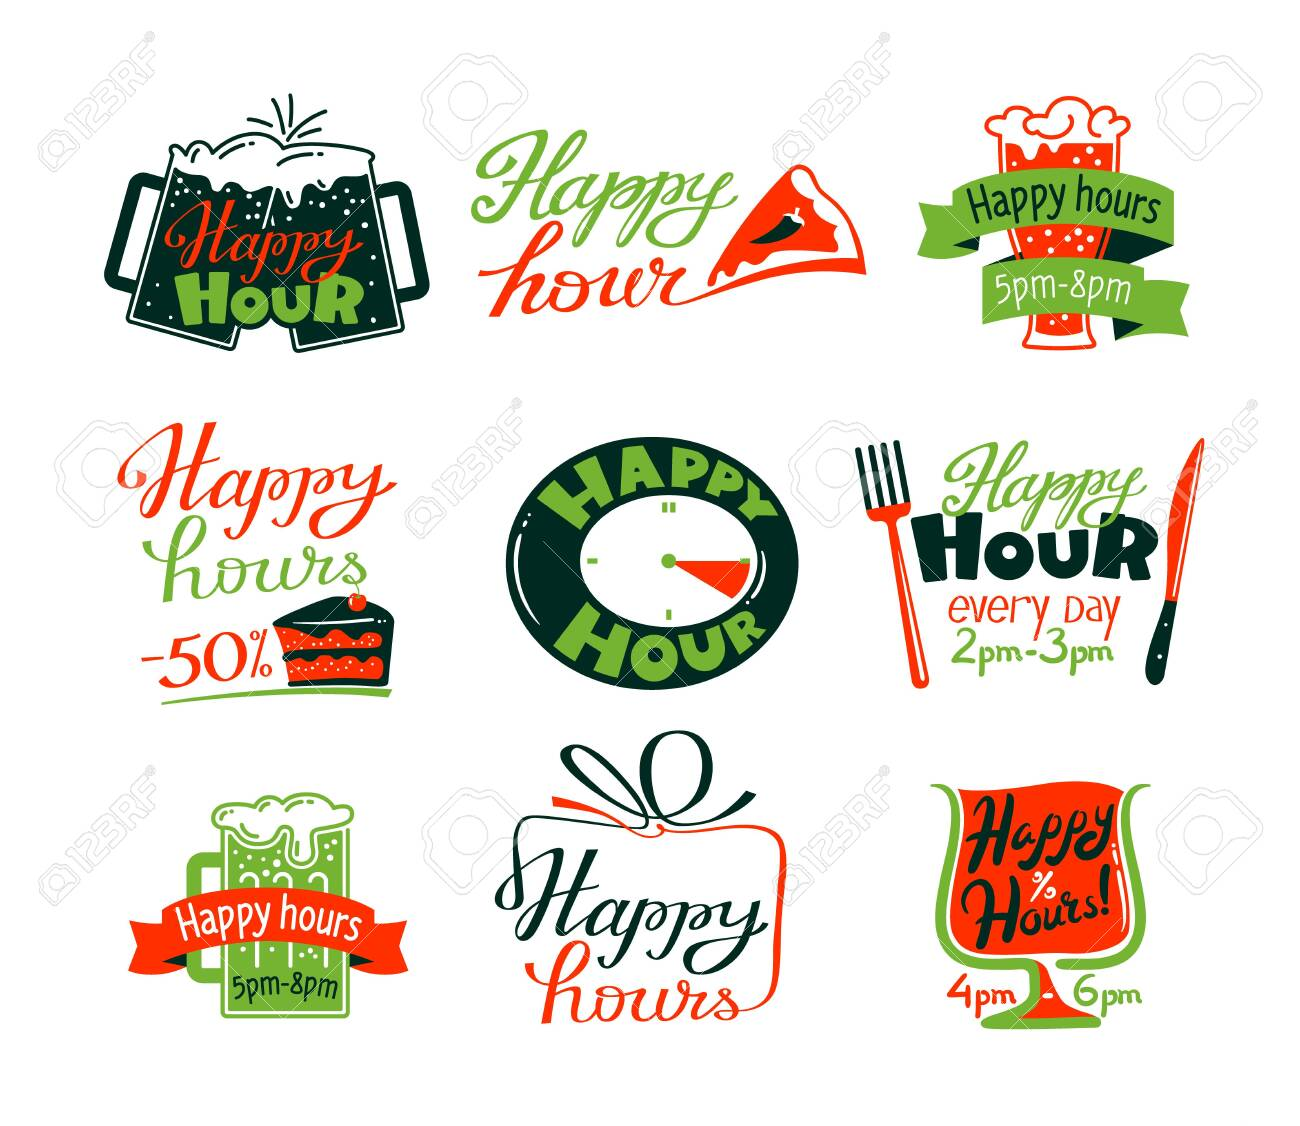 Happy Hour Icons Set, Discount Special Offer for Cafe or Restaurant Visitors, Promo Labels with Beer Mug, Cake and Clock - 153195100